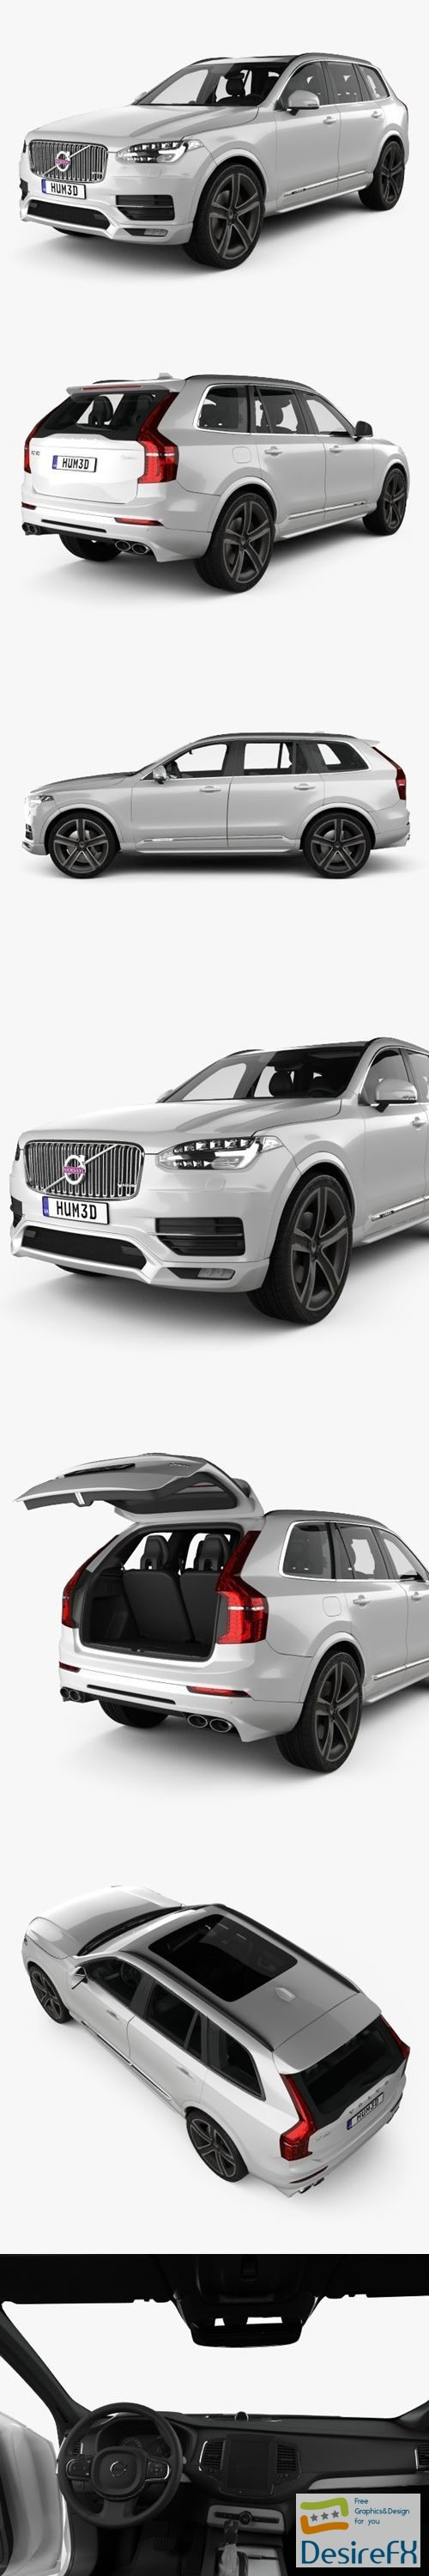 3d-models - Volvo XC90 Heico with HQ interior 2016 3D Model